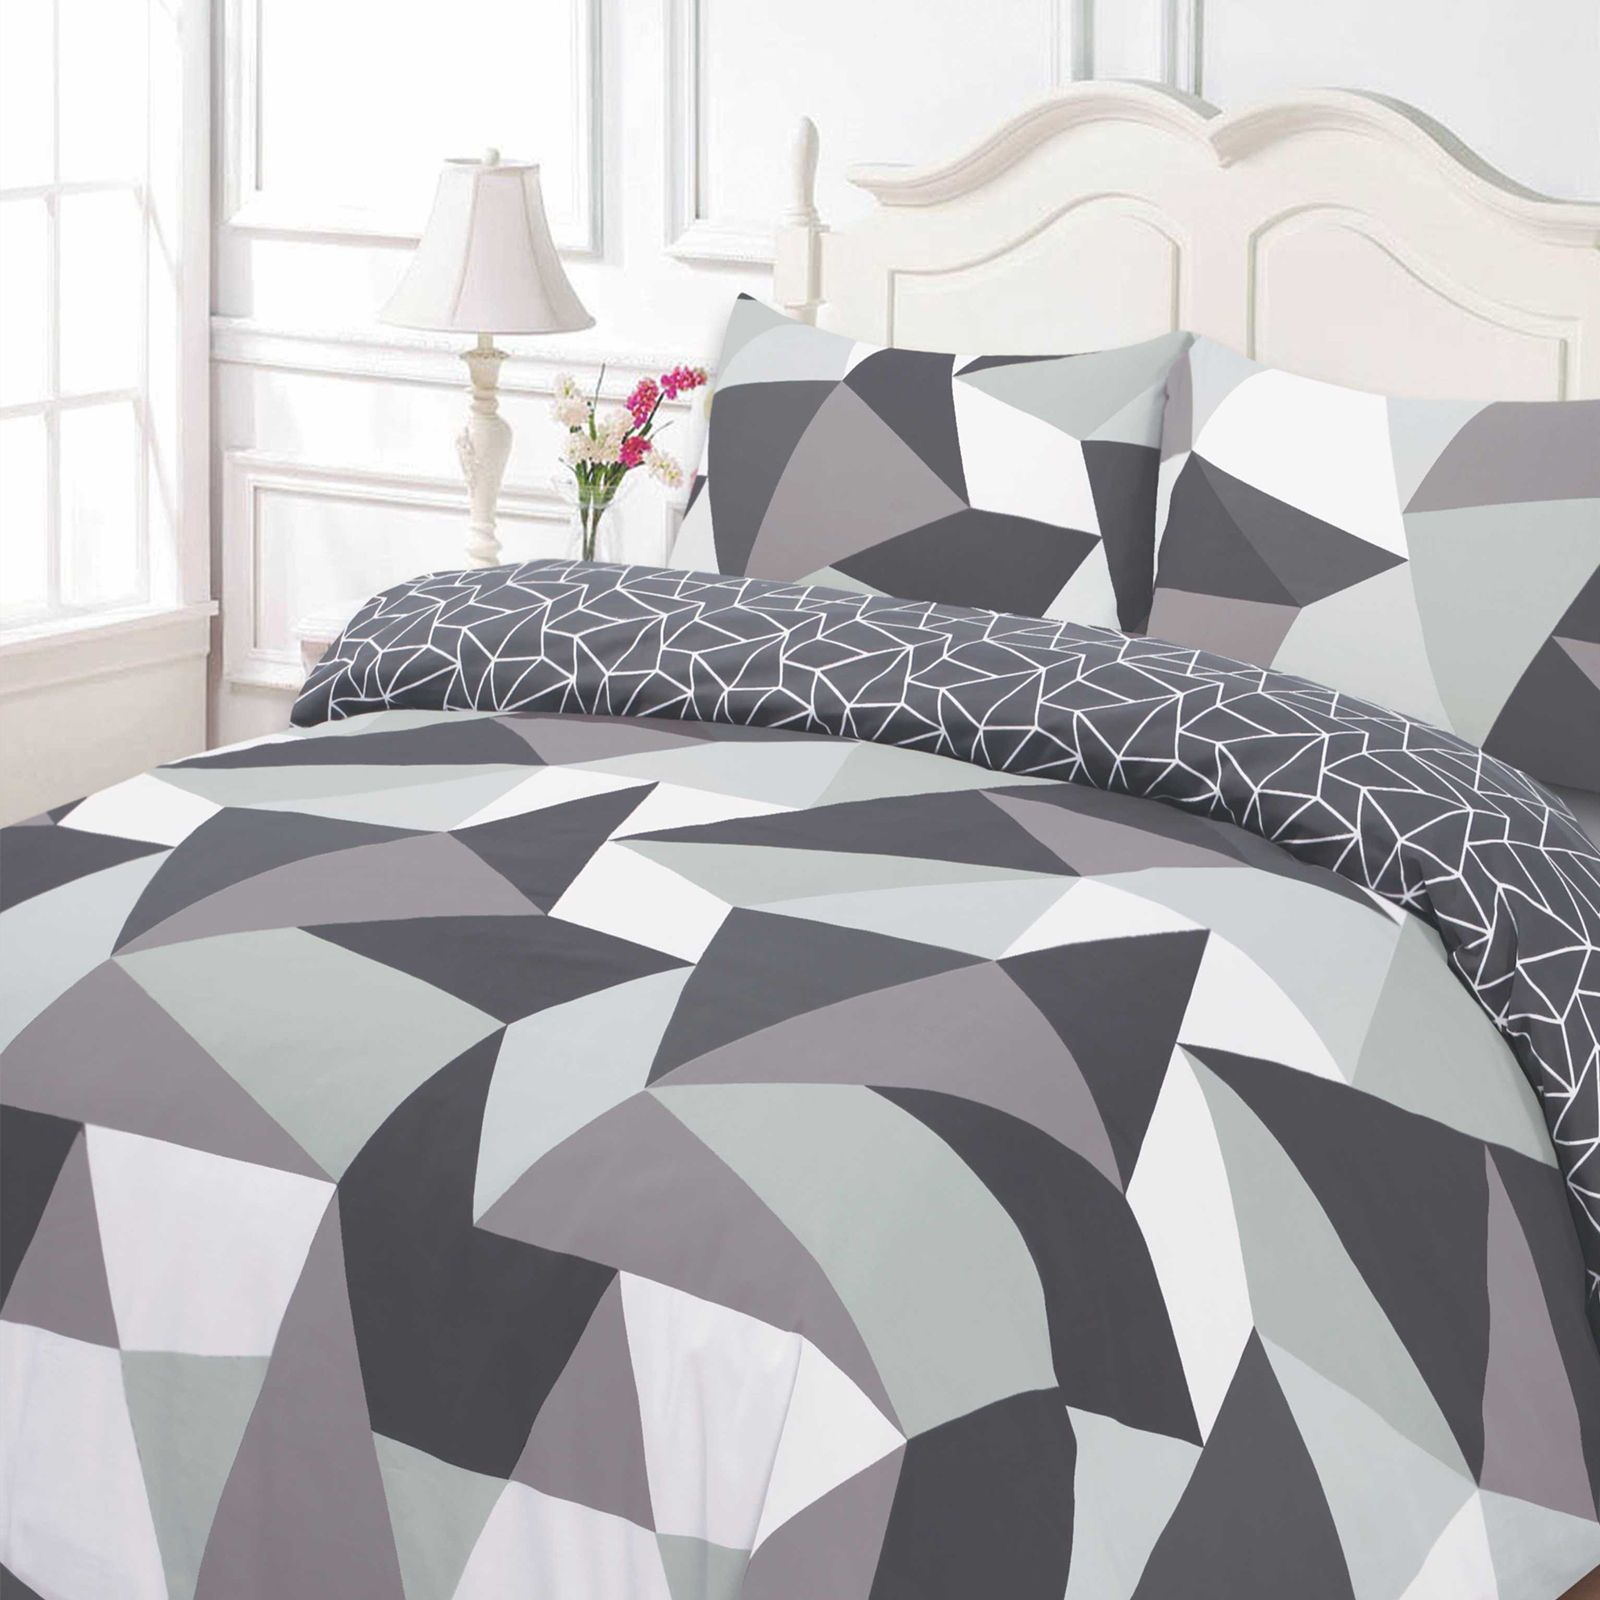 NEW DUVET COVER BEDDING SET WITH PILLOW CASES GREY WHITE RED BLACK QUILT COVERS